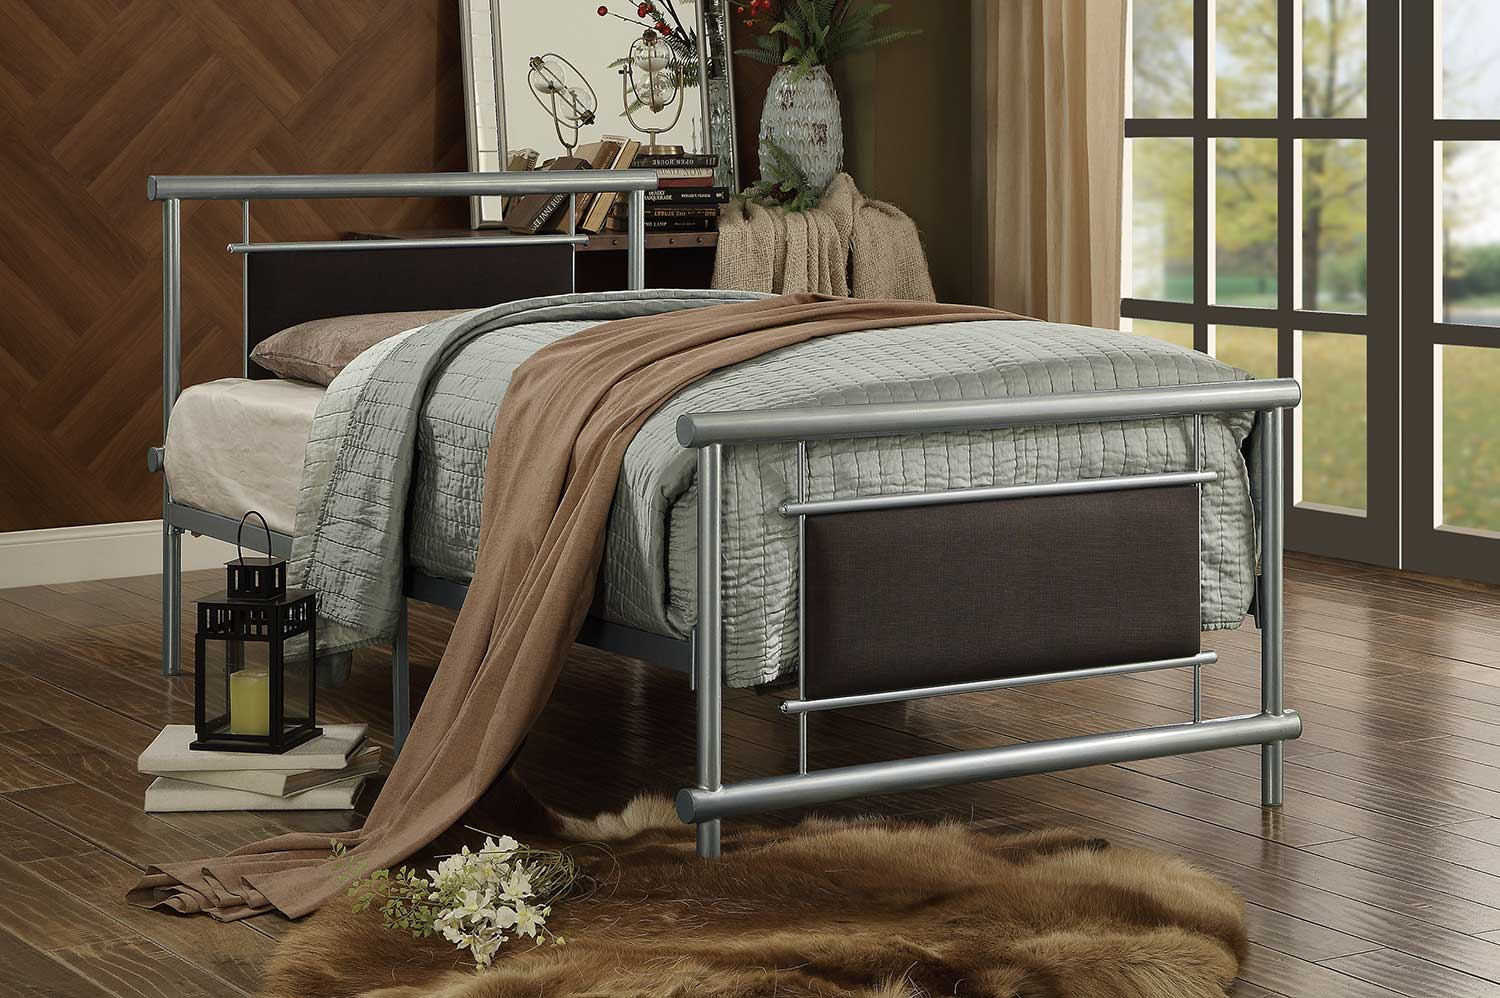 Homelegance Gavino Upholstered Metal Platform Bed - Grey-Brown